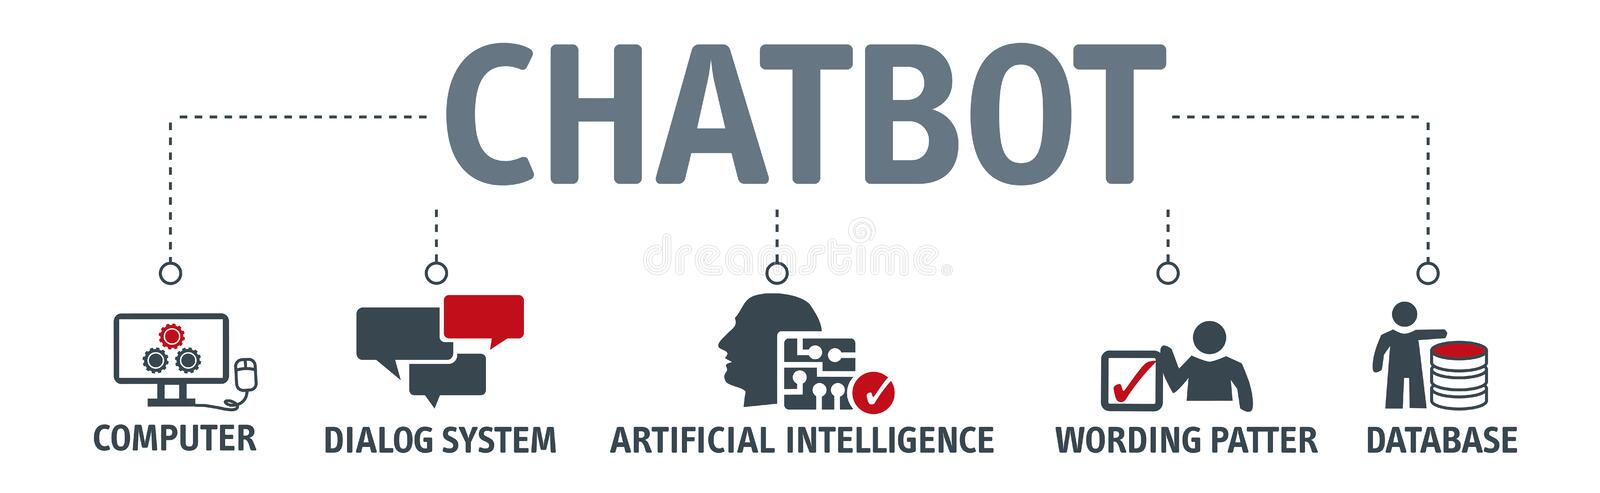 Chatbot vector illustration concept. Chatbot banner vector illustration concept. Horizontal business banner template with keywords and icons royalty free illustration